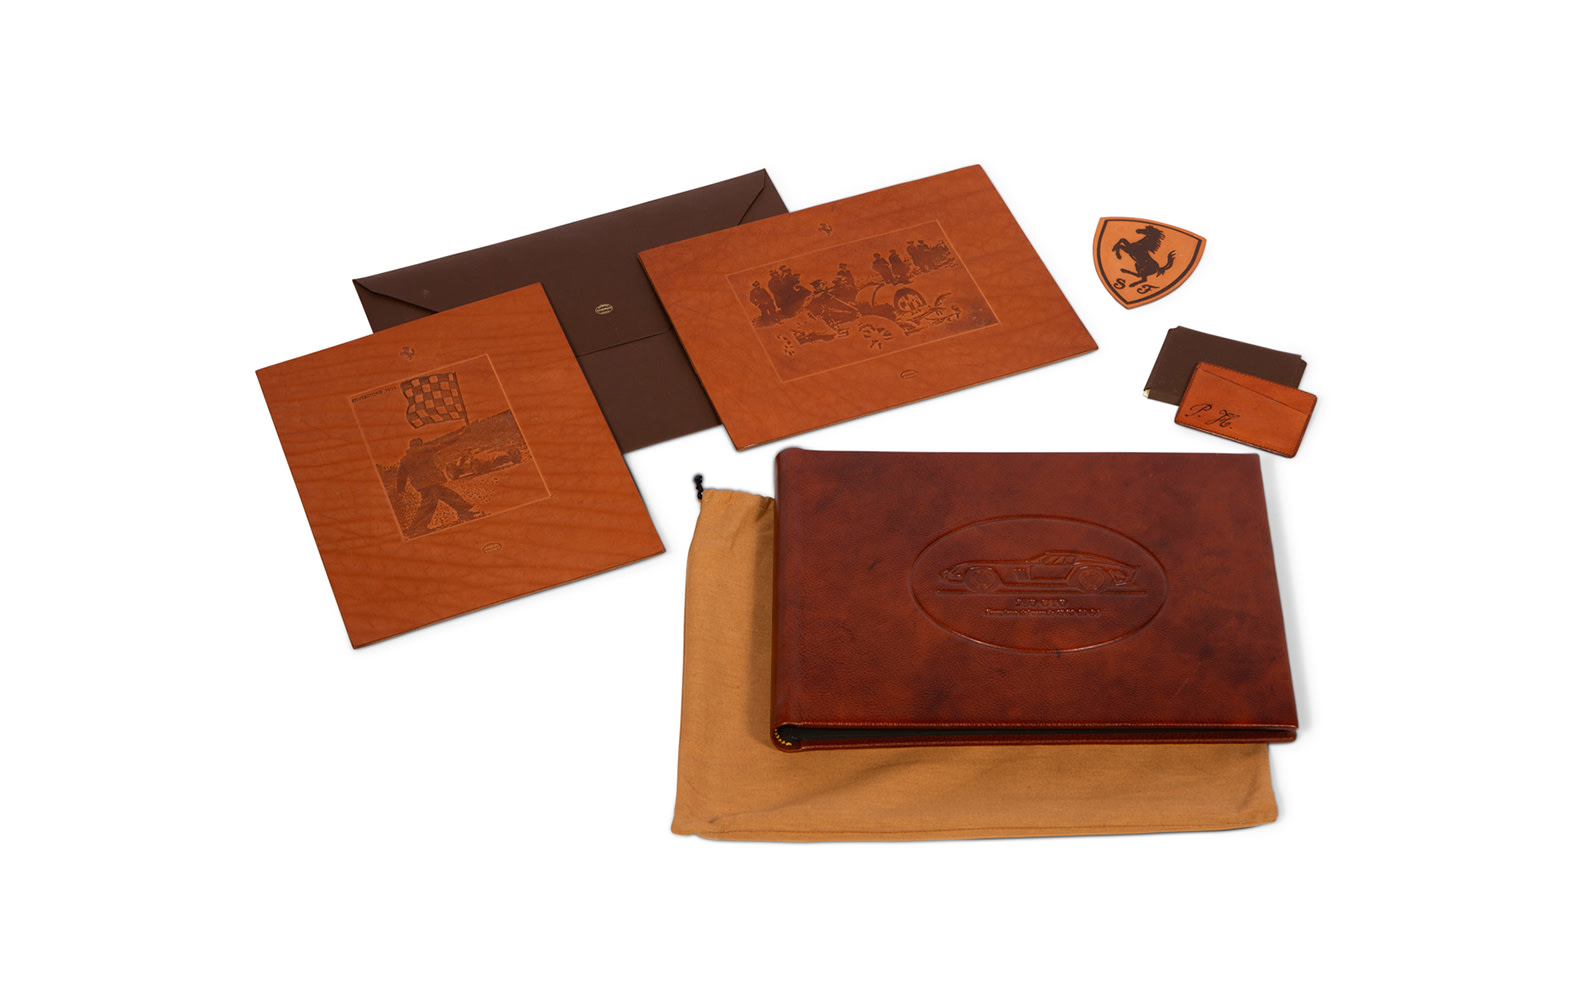 Schedoni Embossed Leather Artwork, Business Card Holder, and Photo Album, Personalized to Phil Hill